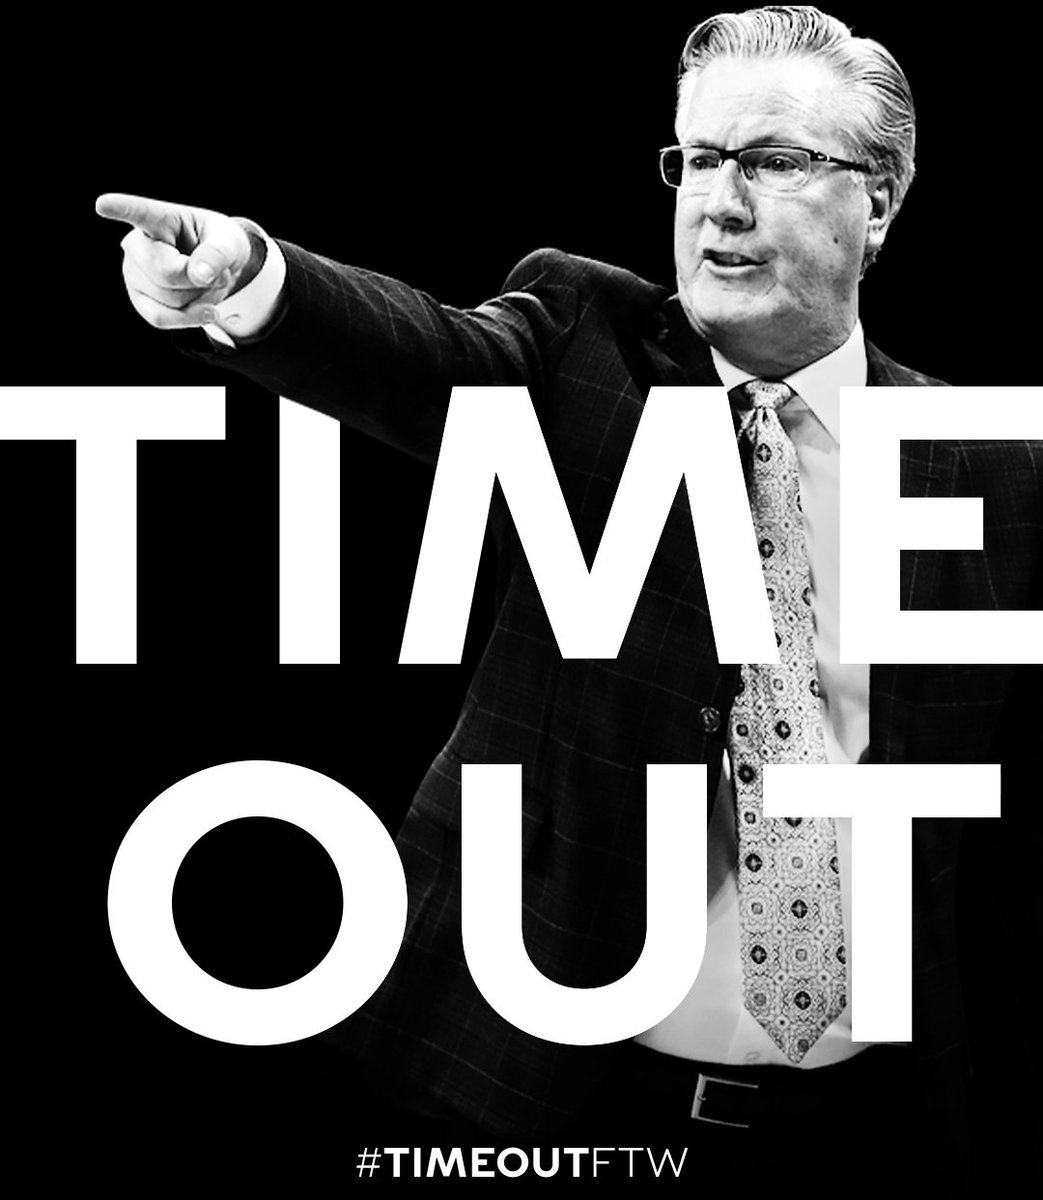 """Vote now for Fran McCaffery in the """"Timeout For the Win"""" Challenge.   Vote Now: http://bit.ly/2Cum9CE   #CoachFranMcCaffery #TIMEOUTFTW"""